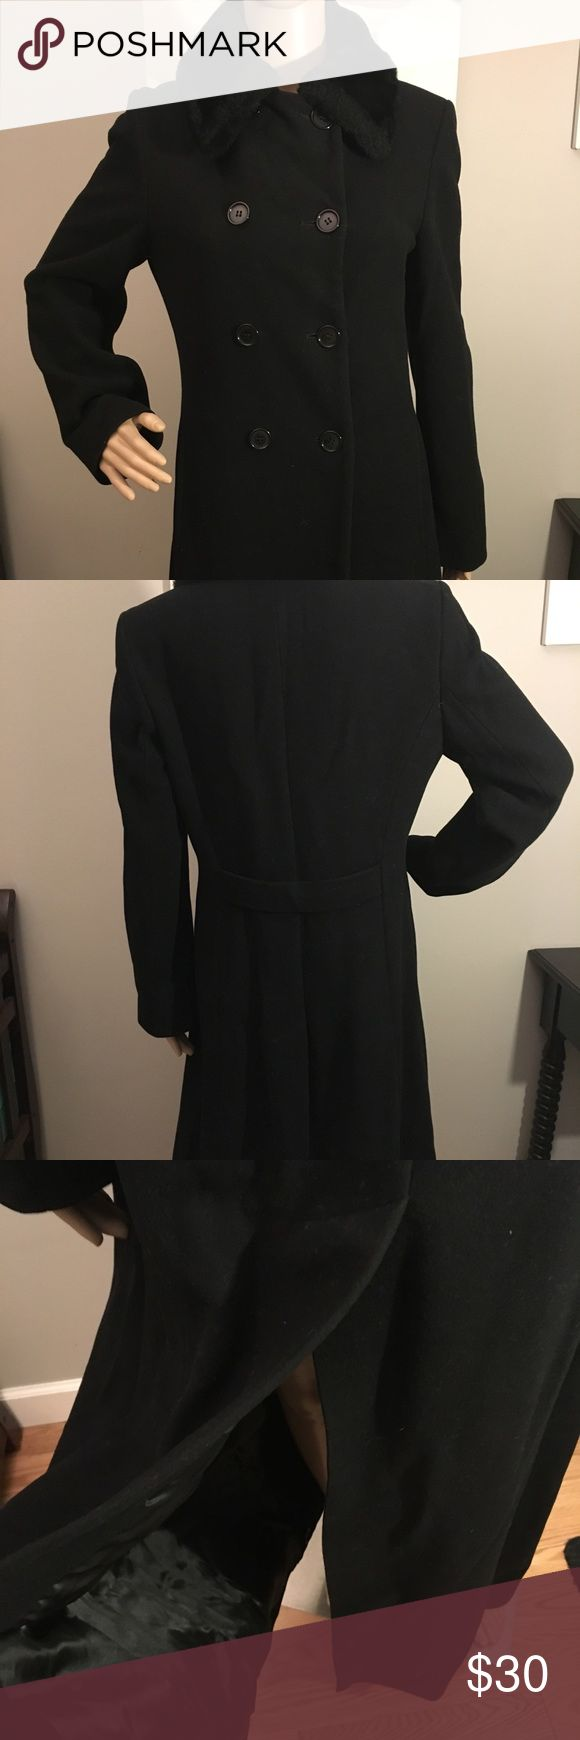 Vintage Benetton ankle length wool coat. Size XS Beautiful vintage Benetton ankle length wool coat. Faux fur collar.  Double breasted with a high back split.  There is a small hole on the left lower panel, pictured above. This coat is so warm and is a timeless classic.  Made in Italy.  Size XS United Colors Of Benetton Jackets & Coats